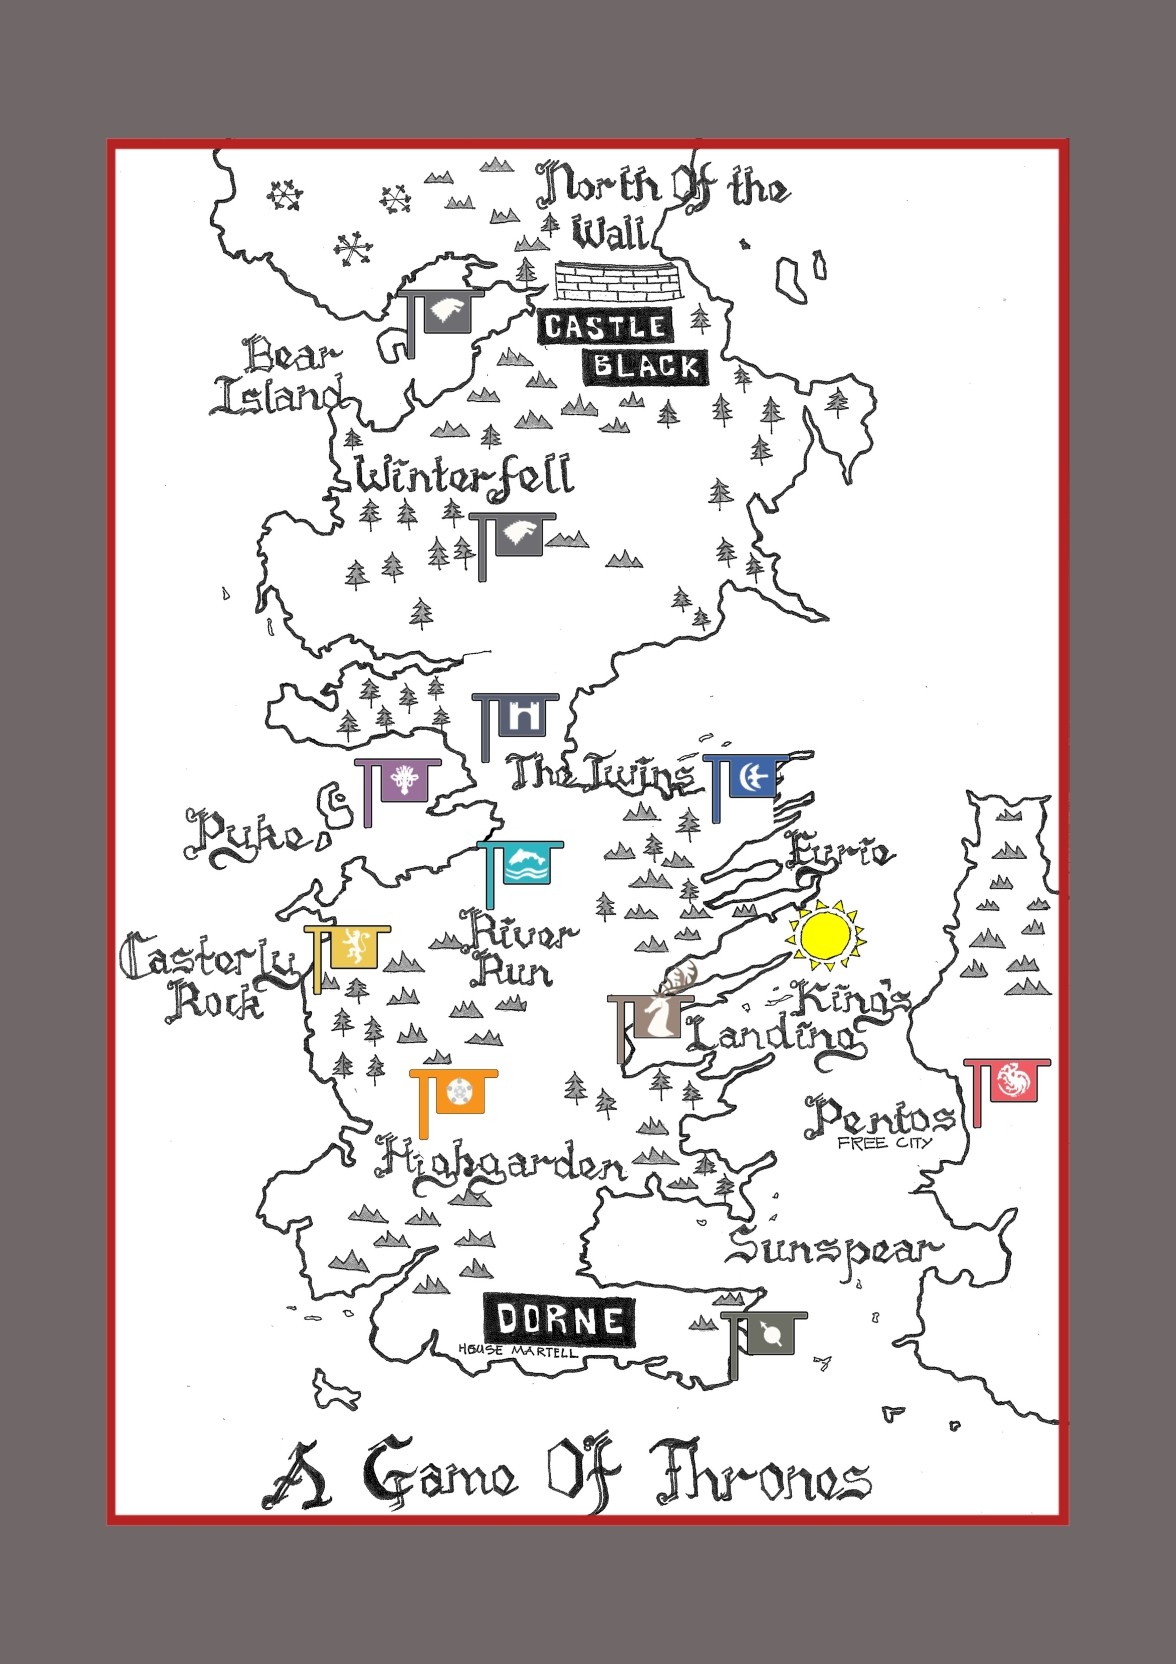 Game Of Thrones Westeros Map Poster Paper Print - Rectangle posters Map Of Game Thrones Poster on